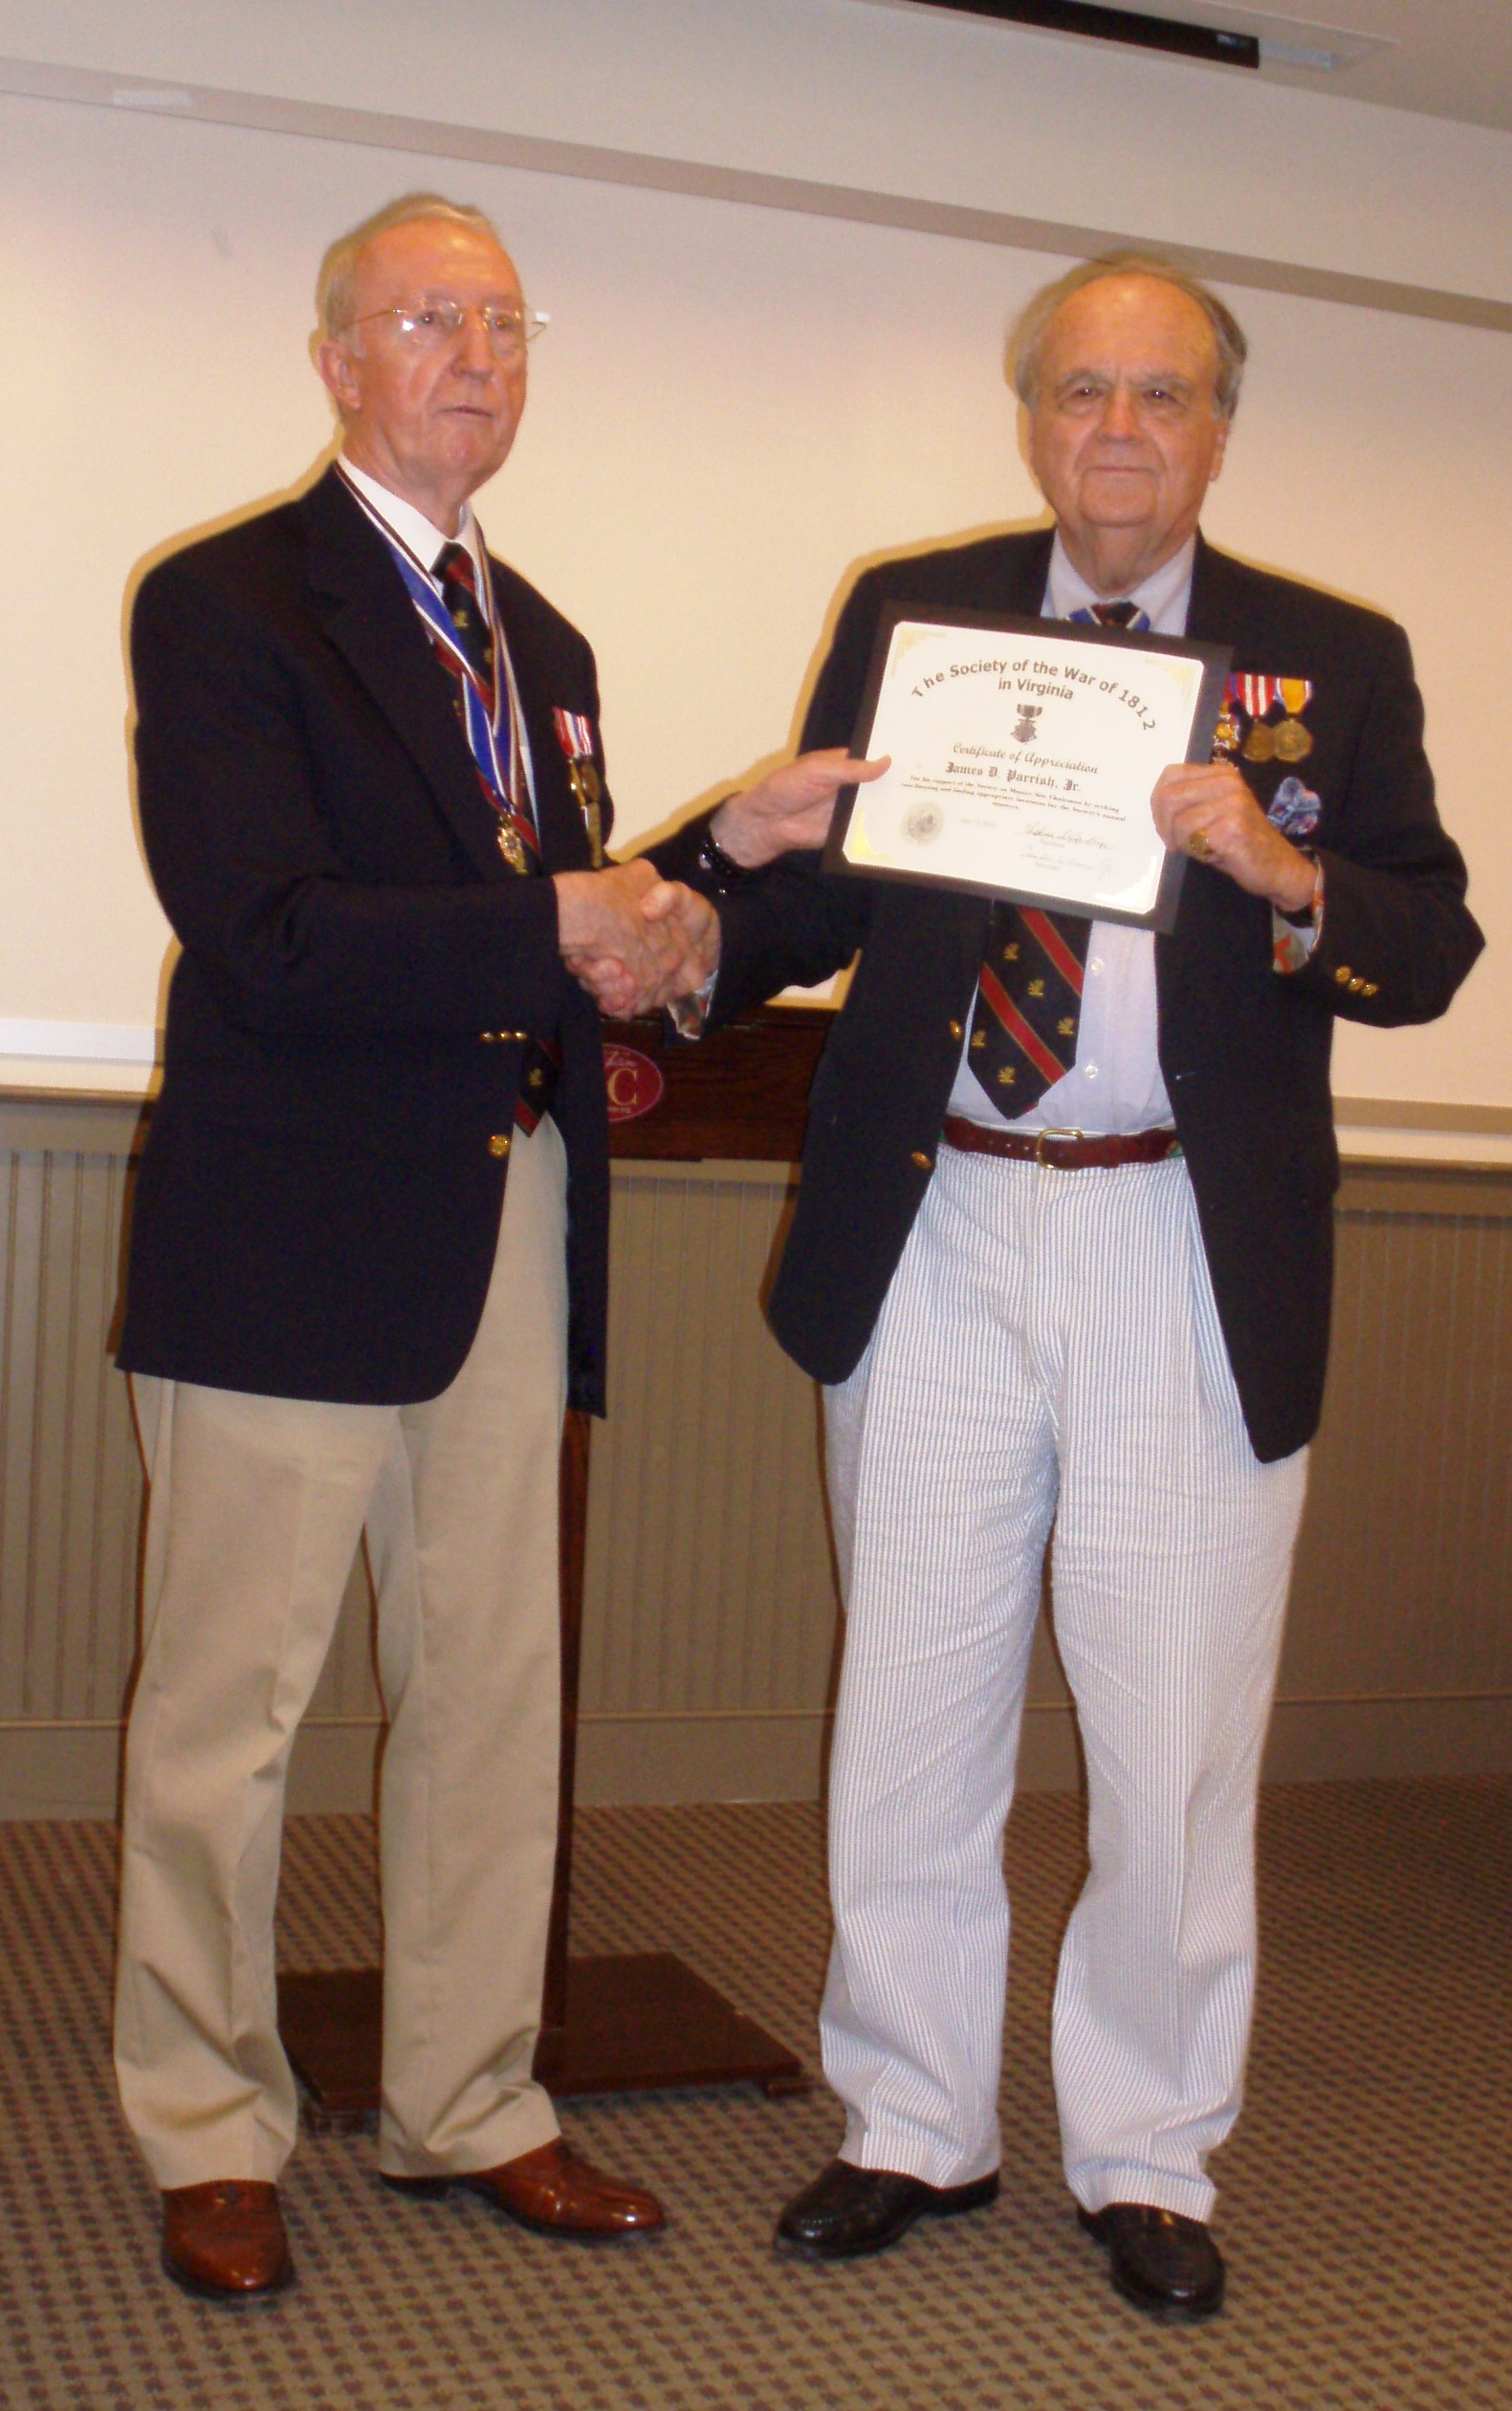 Jim-Parrish-receives-Certificate